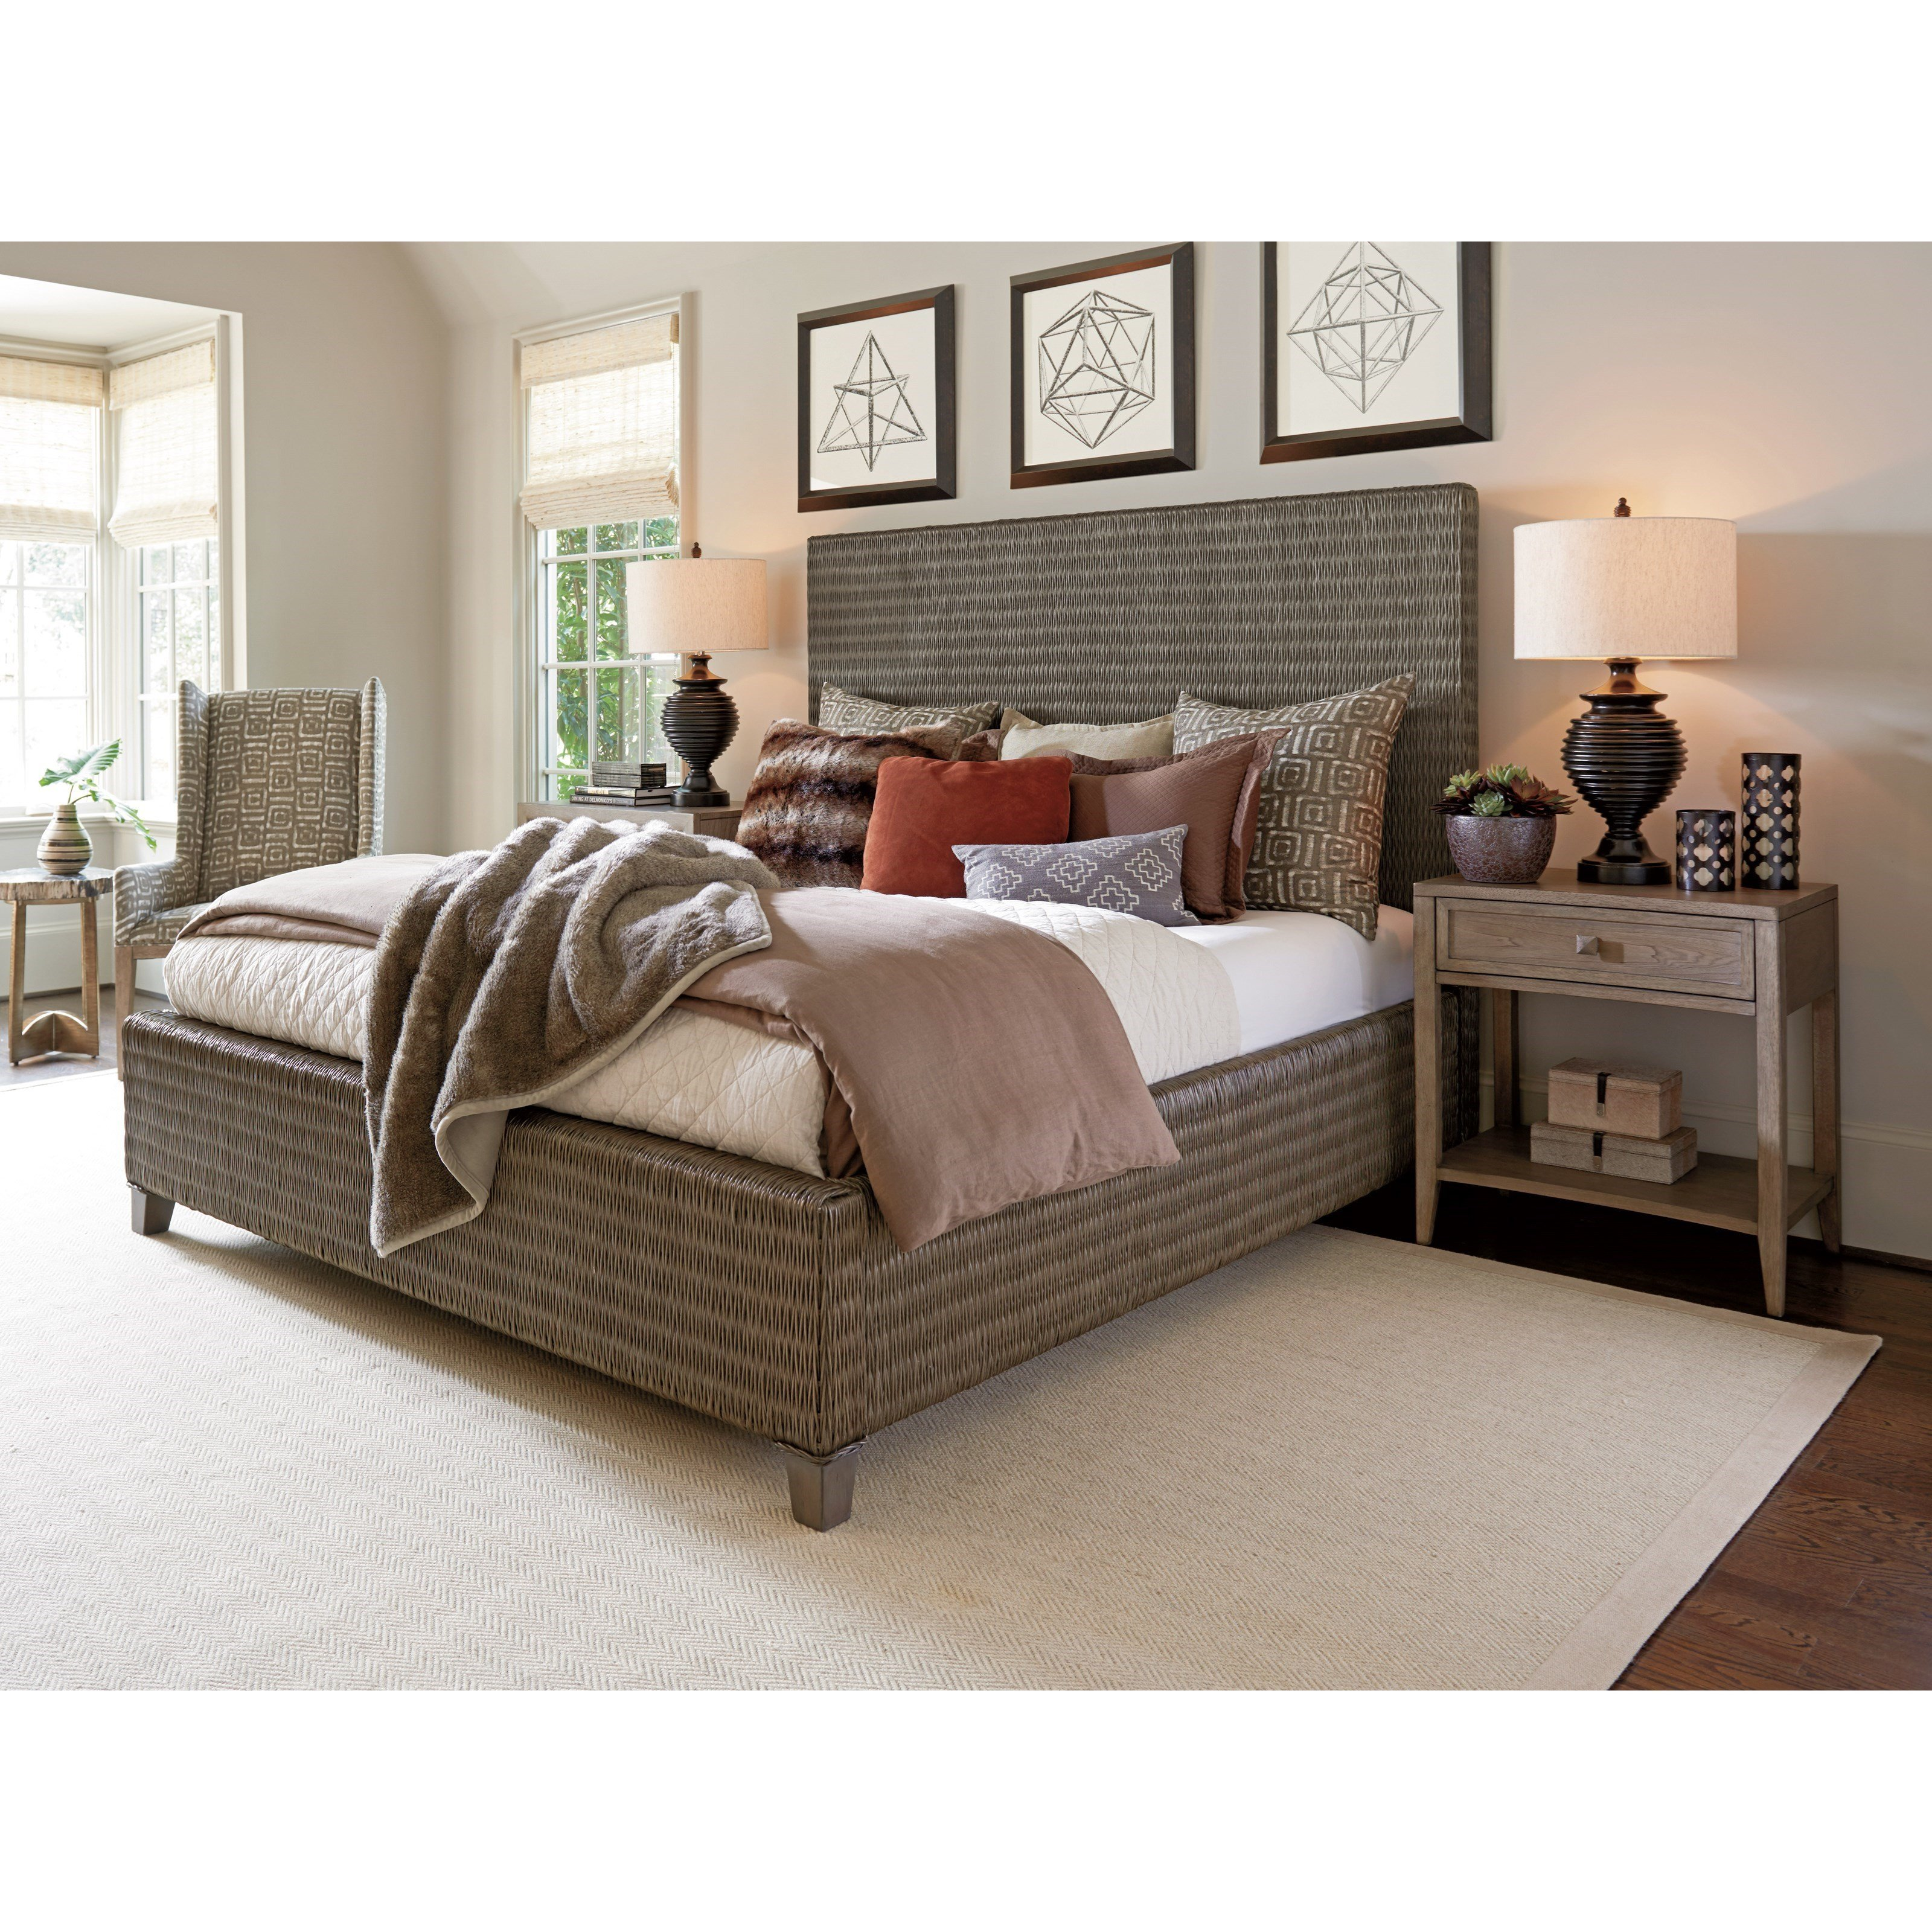 Tommy Bahama Bedroom Set Lovely tommy Bahama Home Cypress Point King Bedroom Group